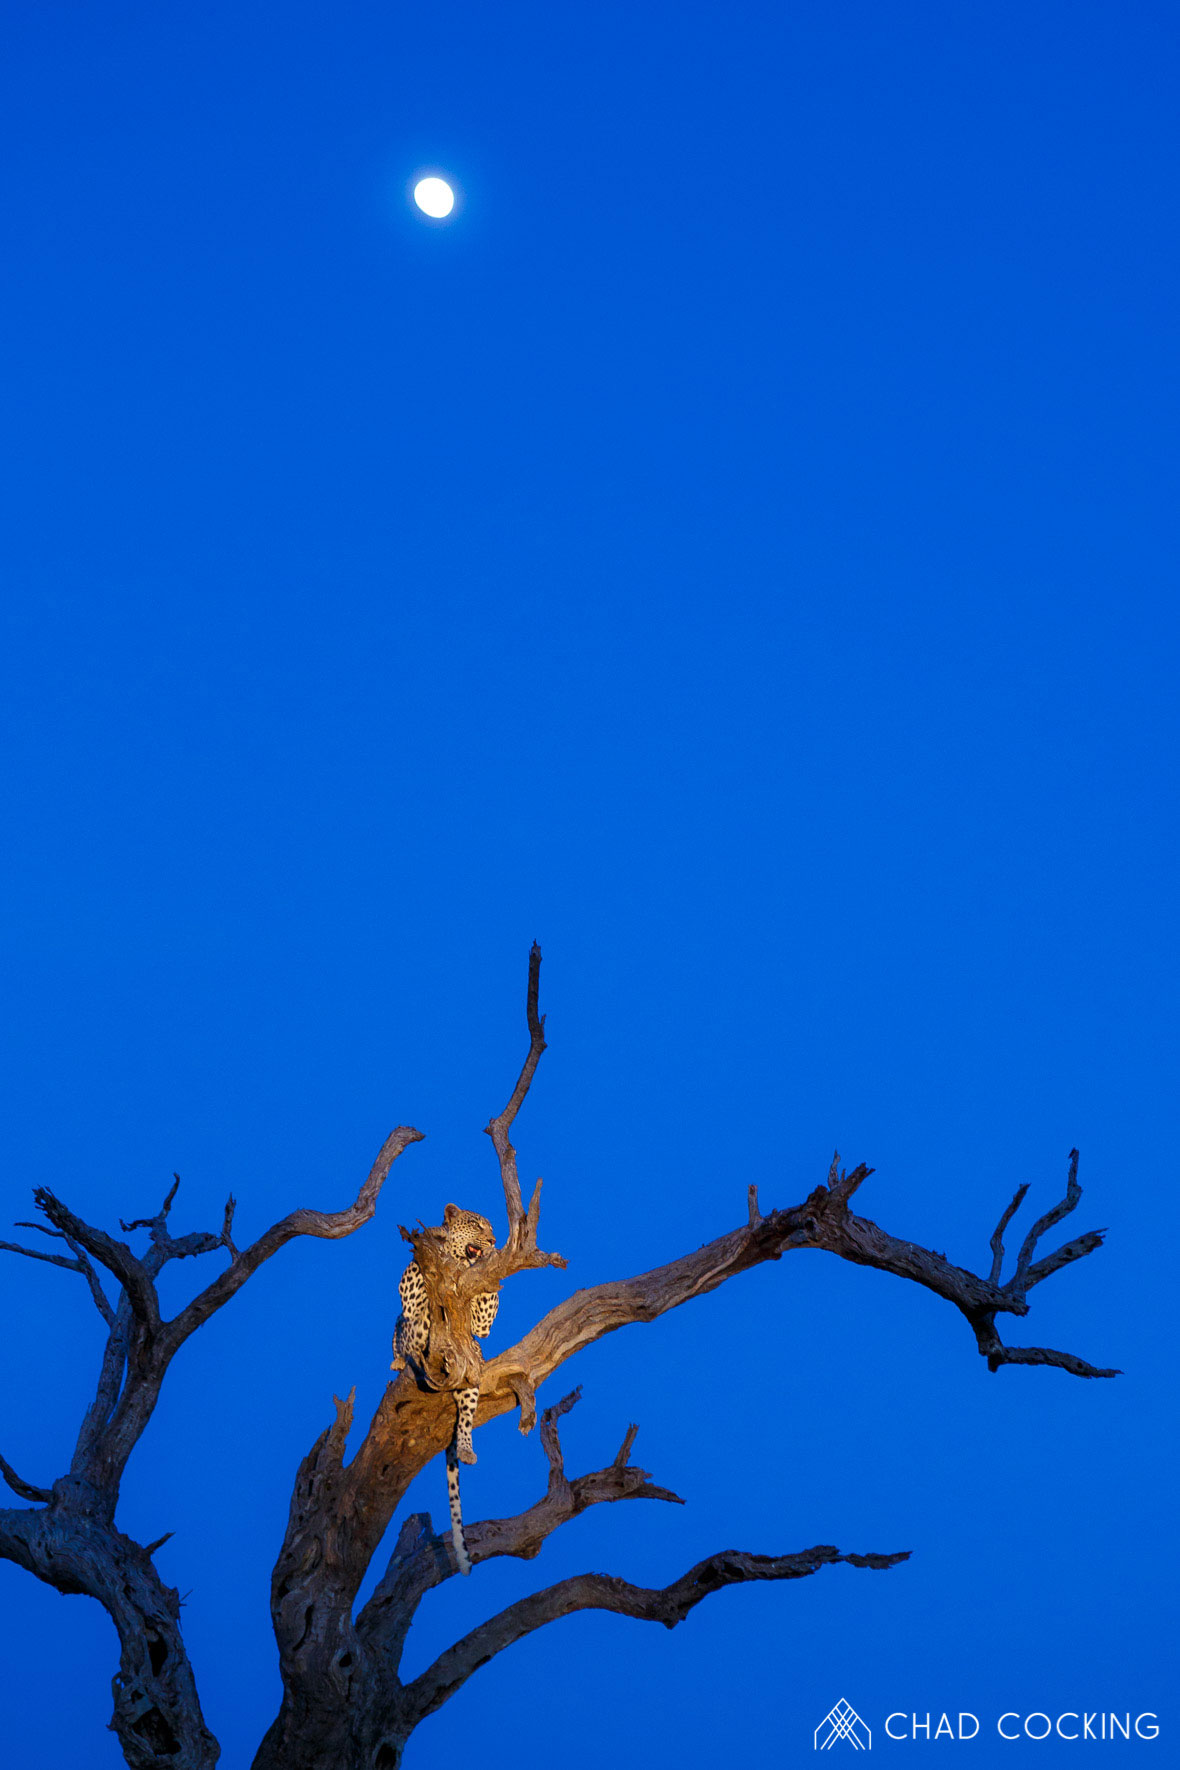 Tanda Tula - Nyeleti leopard under a waxing moon